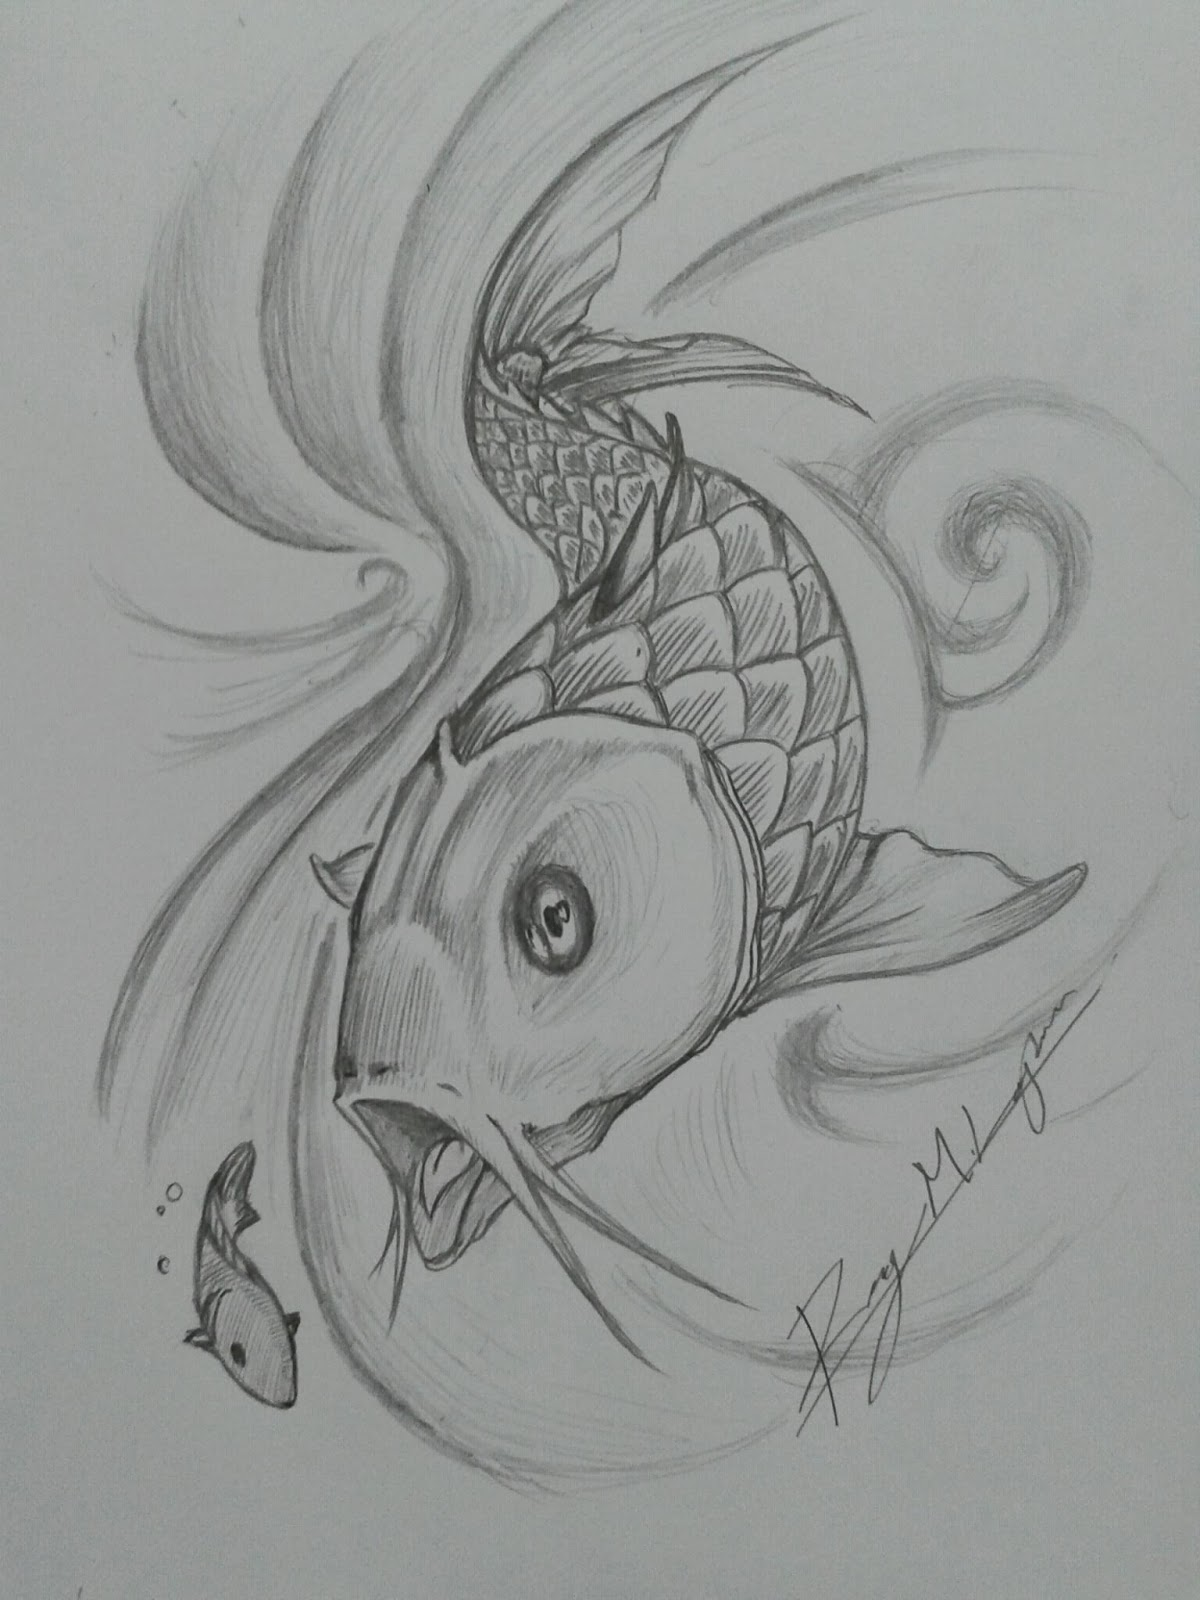 Fish Eating Fish Tattoo Big Fish Eat Small Prey